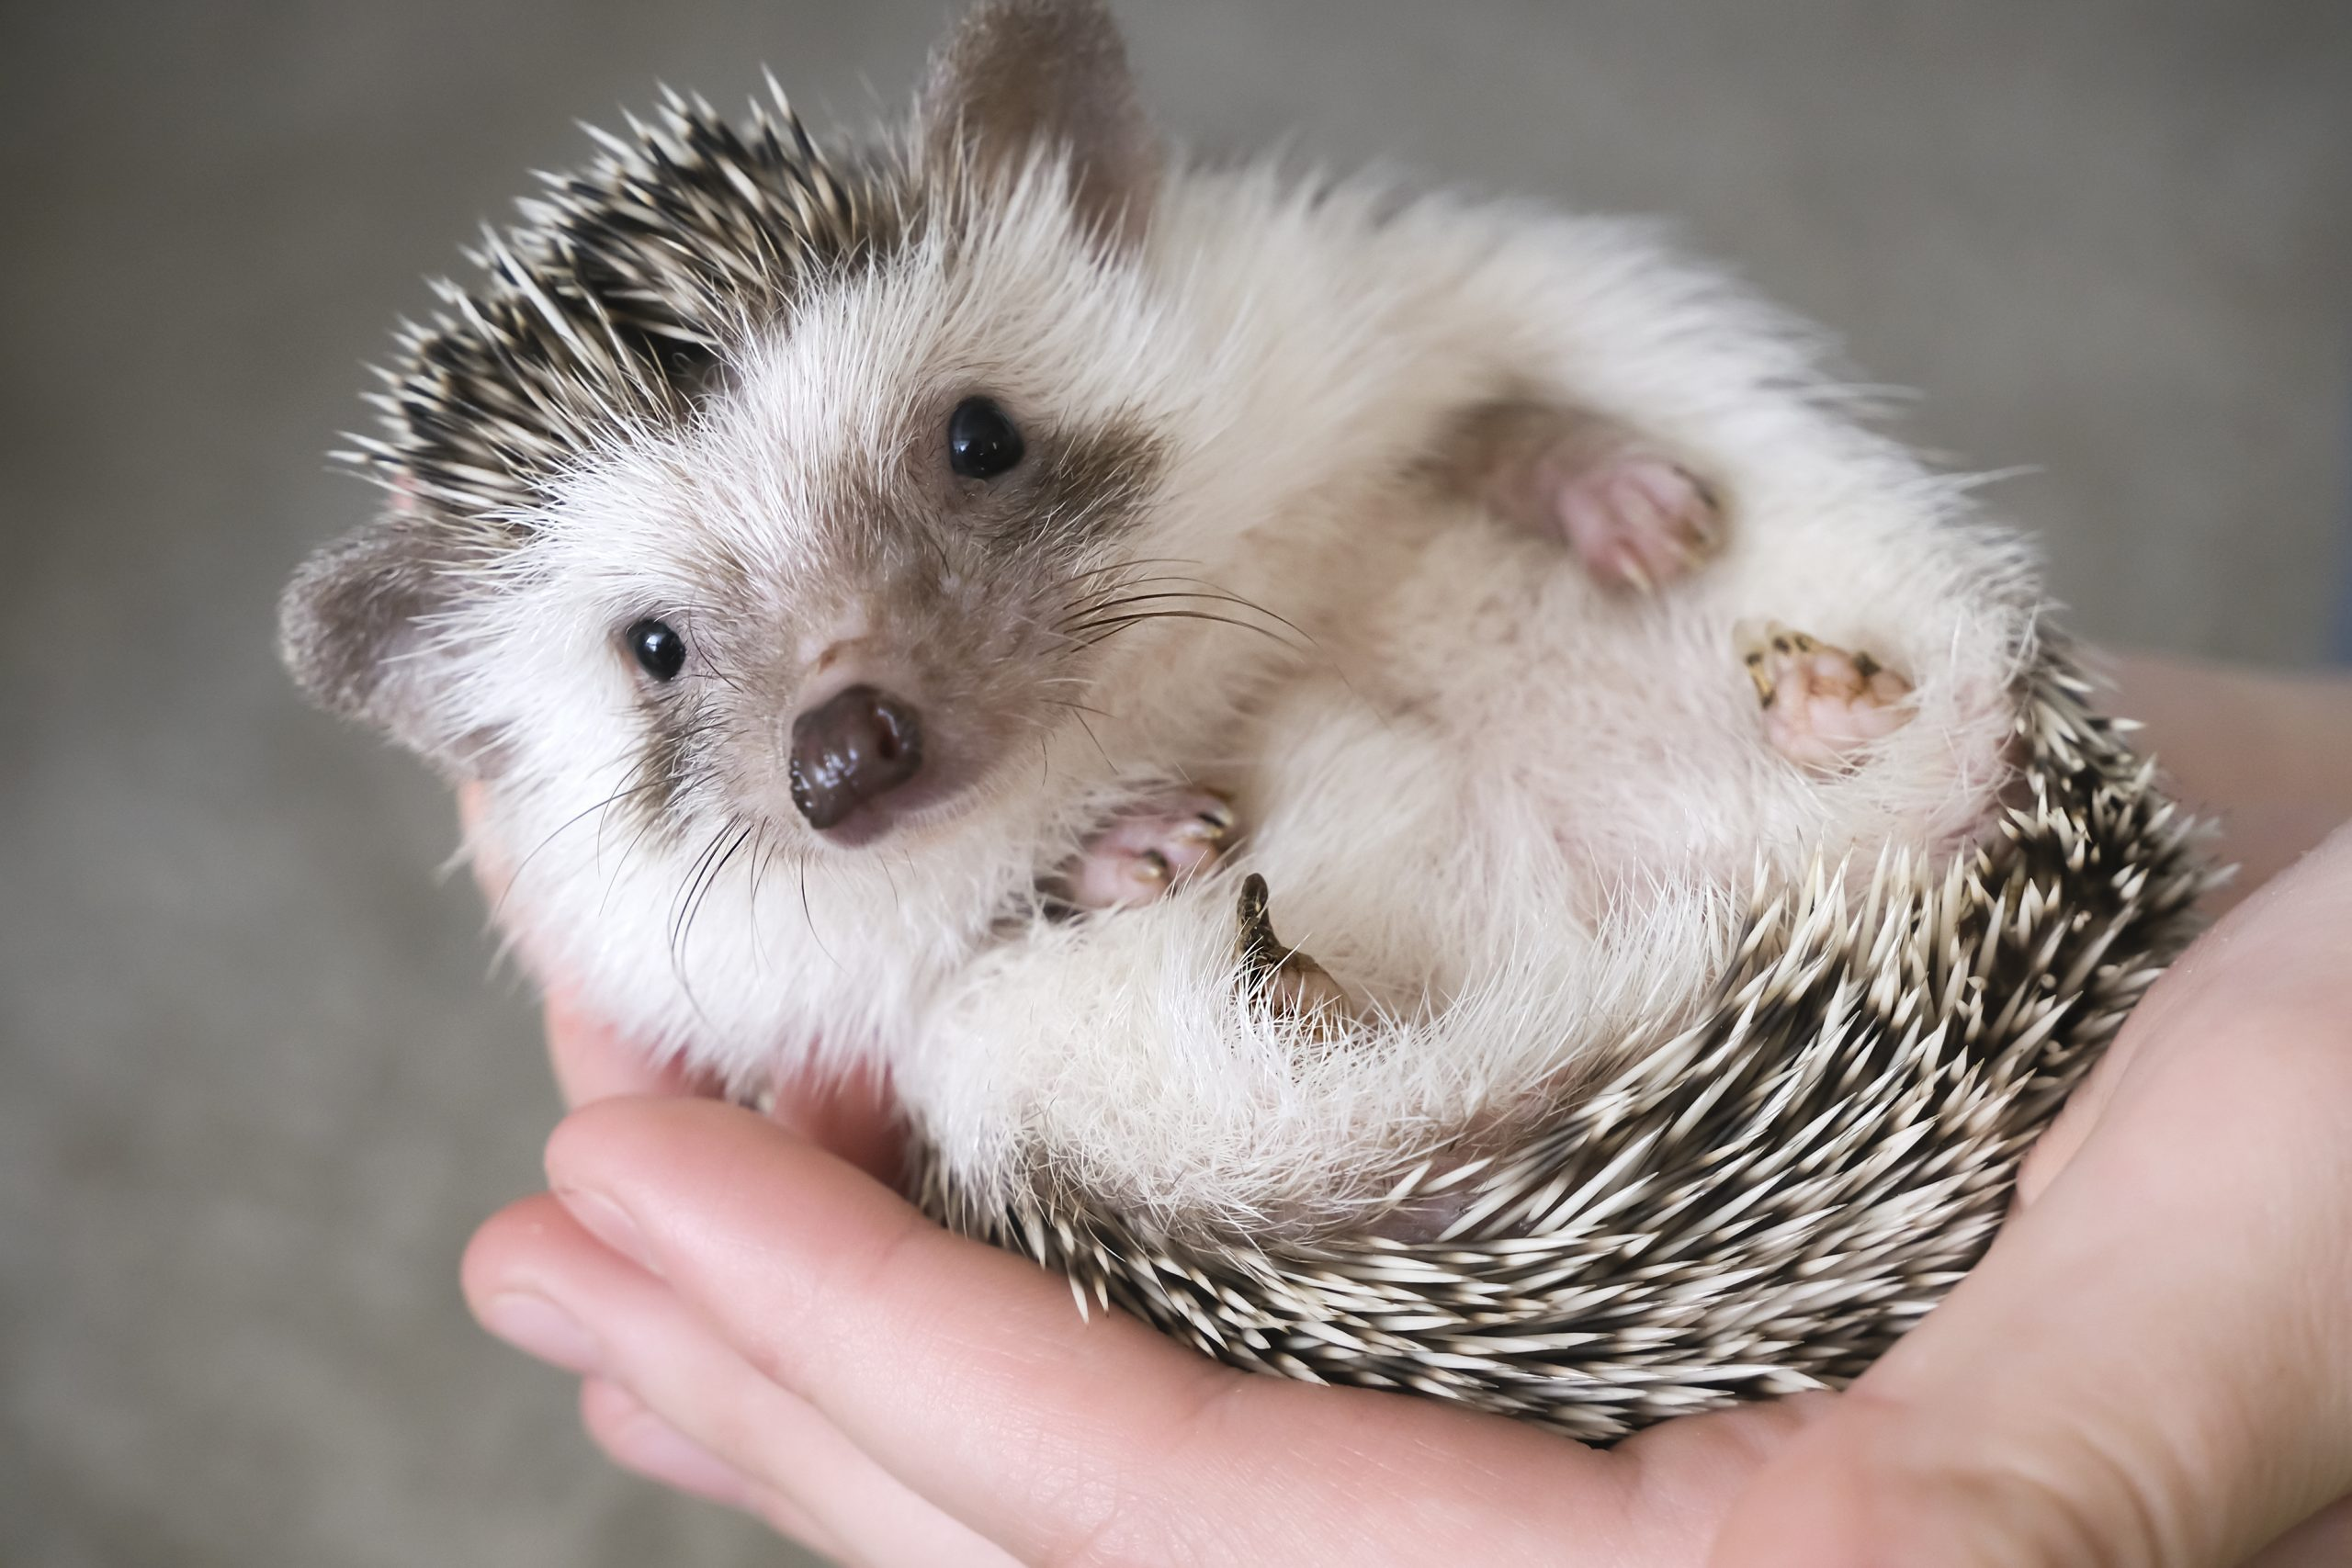 African pygmy hedgehog lies in the hands of a person. High quality photo